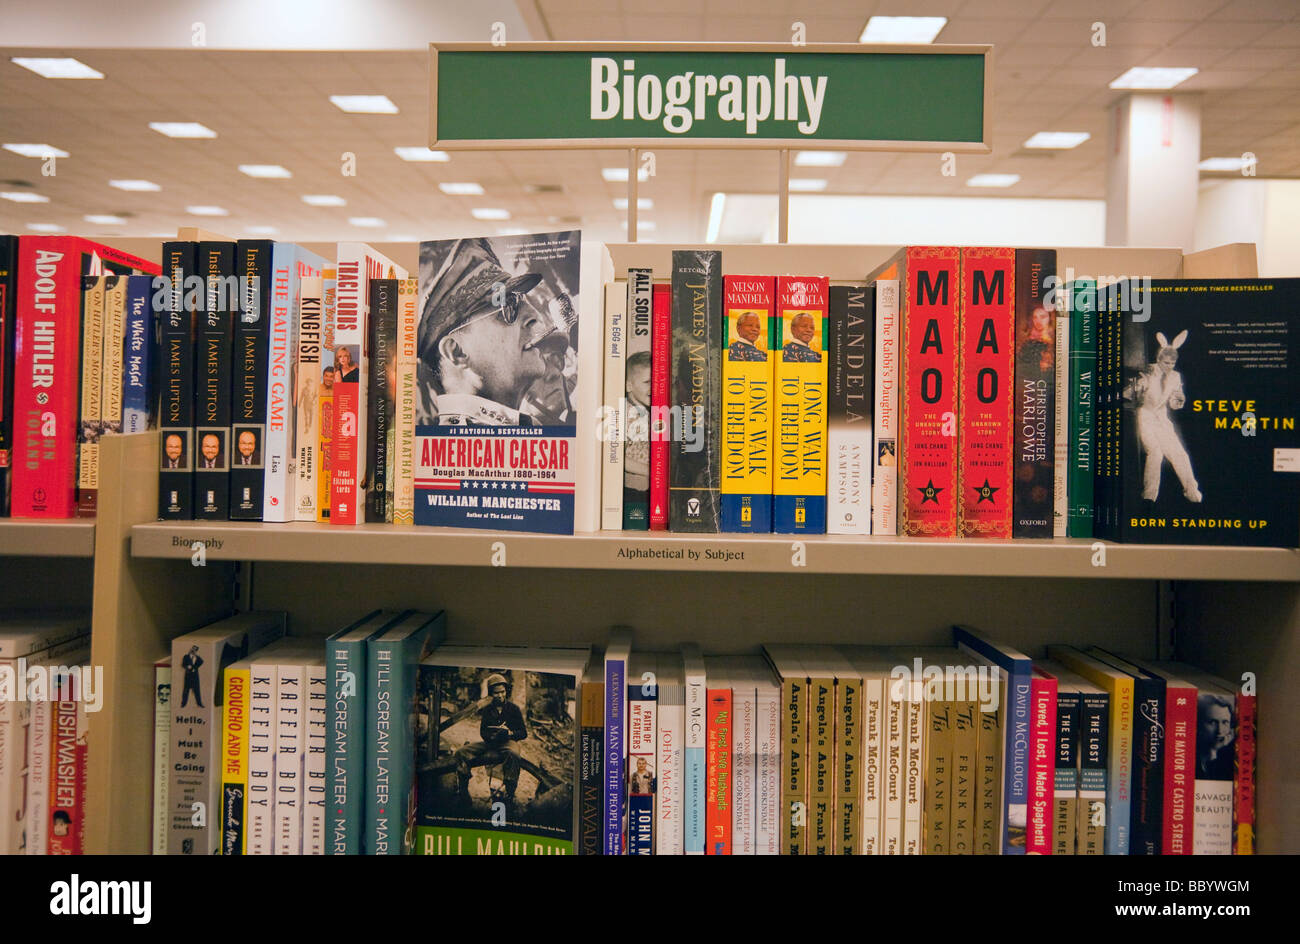 biography book shelves, Barnes and Noble, USA - Stock Image